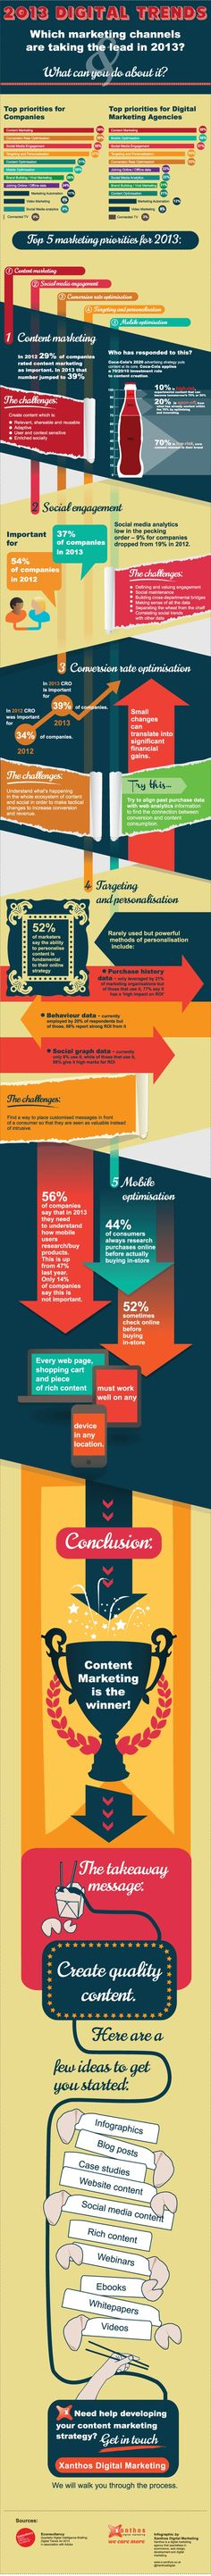 Career -- Top 5 SEO and Marketing Priorities for Content Marketing & Quality Social Media Engagement Conversion Rate Targeting & Personalization Mobile Optimization Marketing Guru, Digital Marketing Trends, Marketing Channel, Digital Trends, Inbound Marketing, Content Marketing, Internet Marketing, Online Marketing, Social Media Marketing